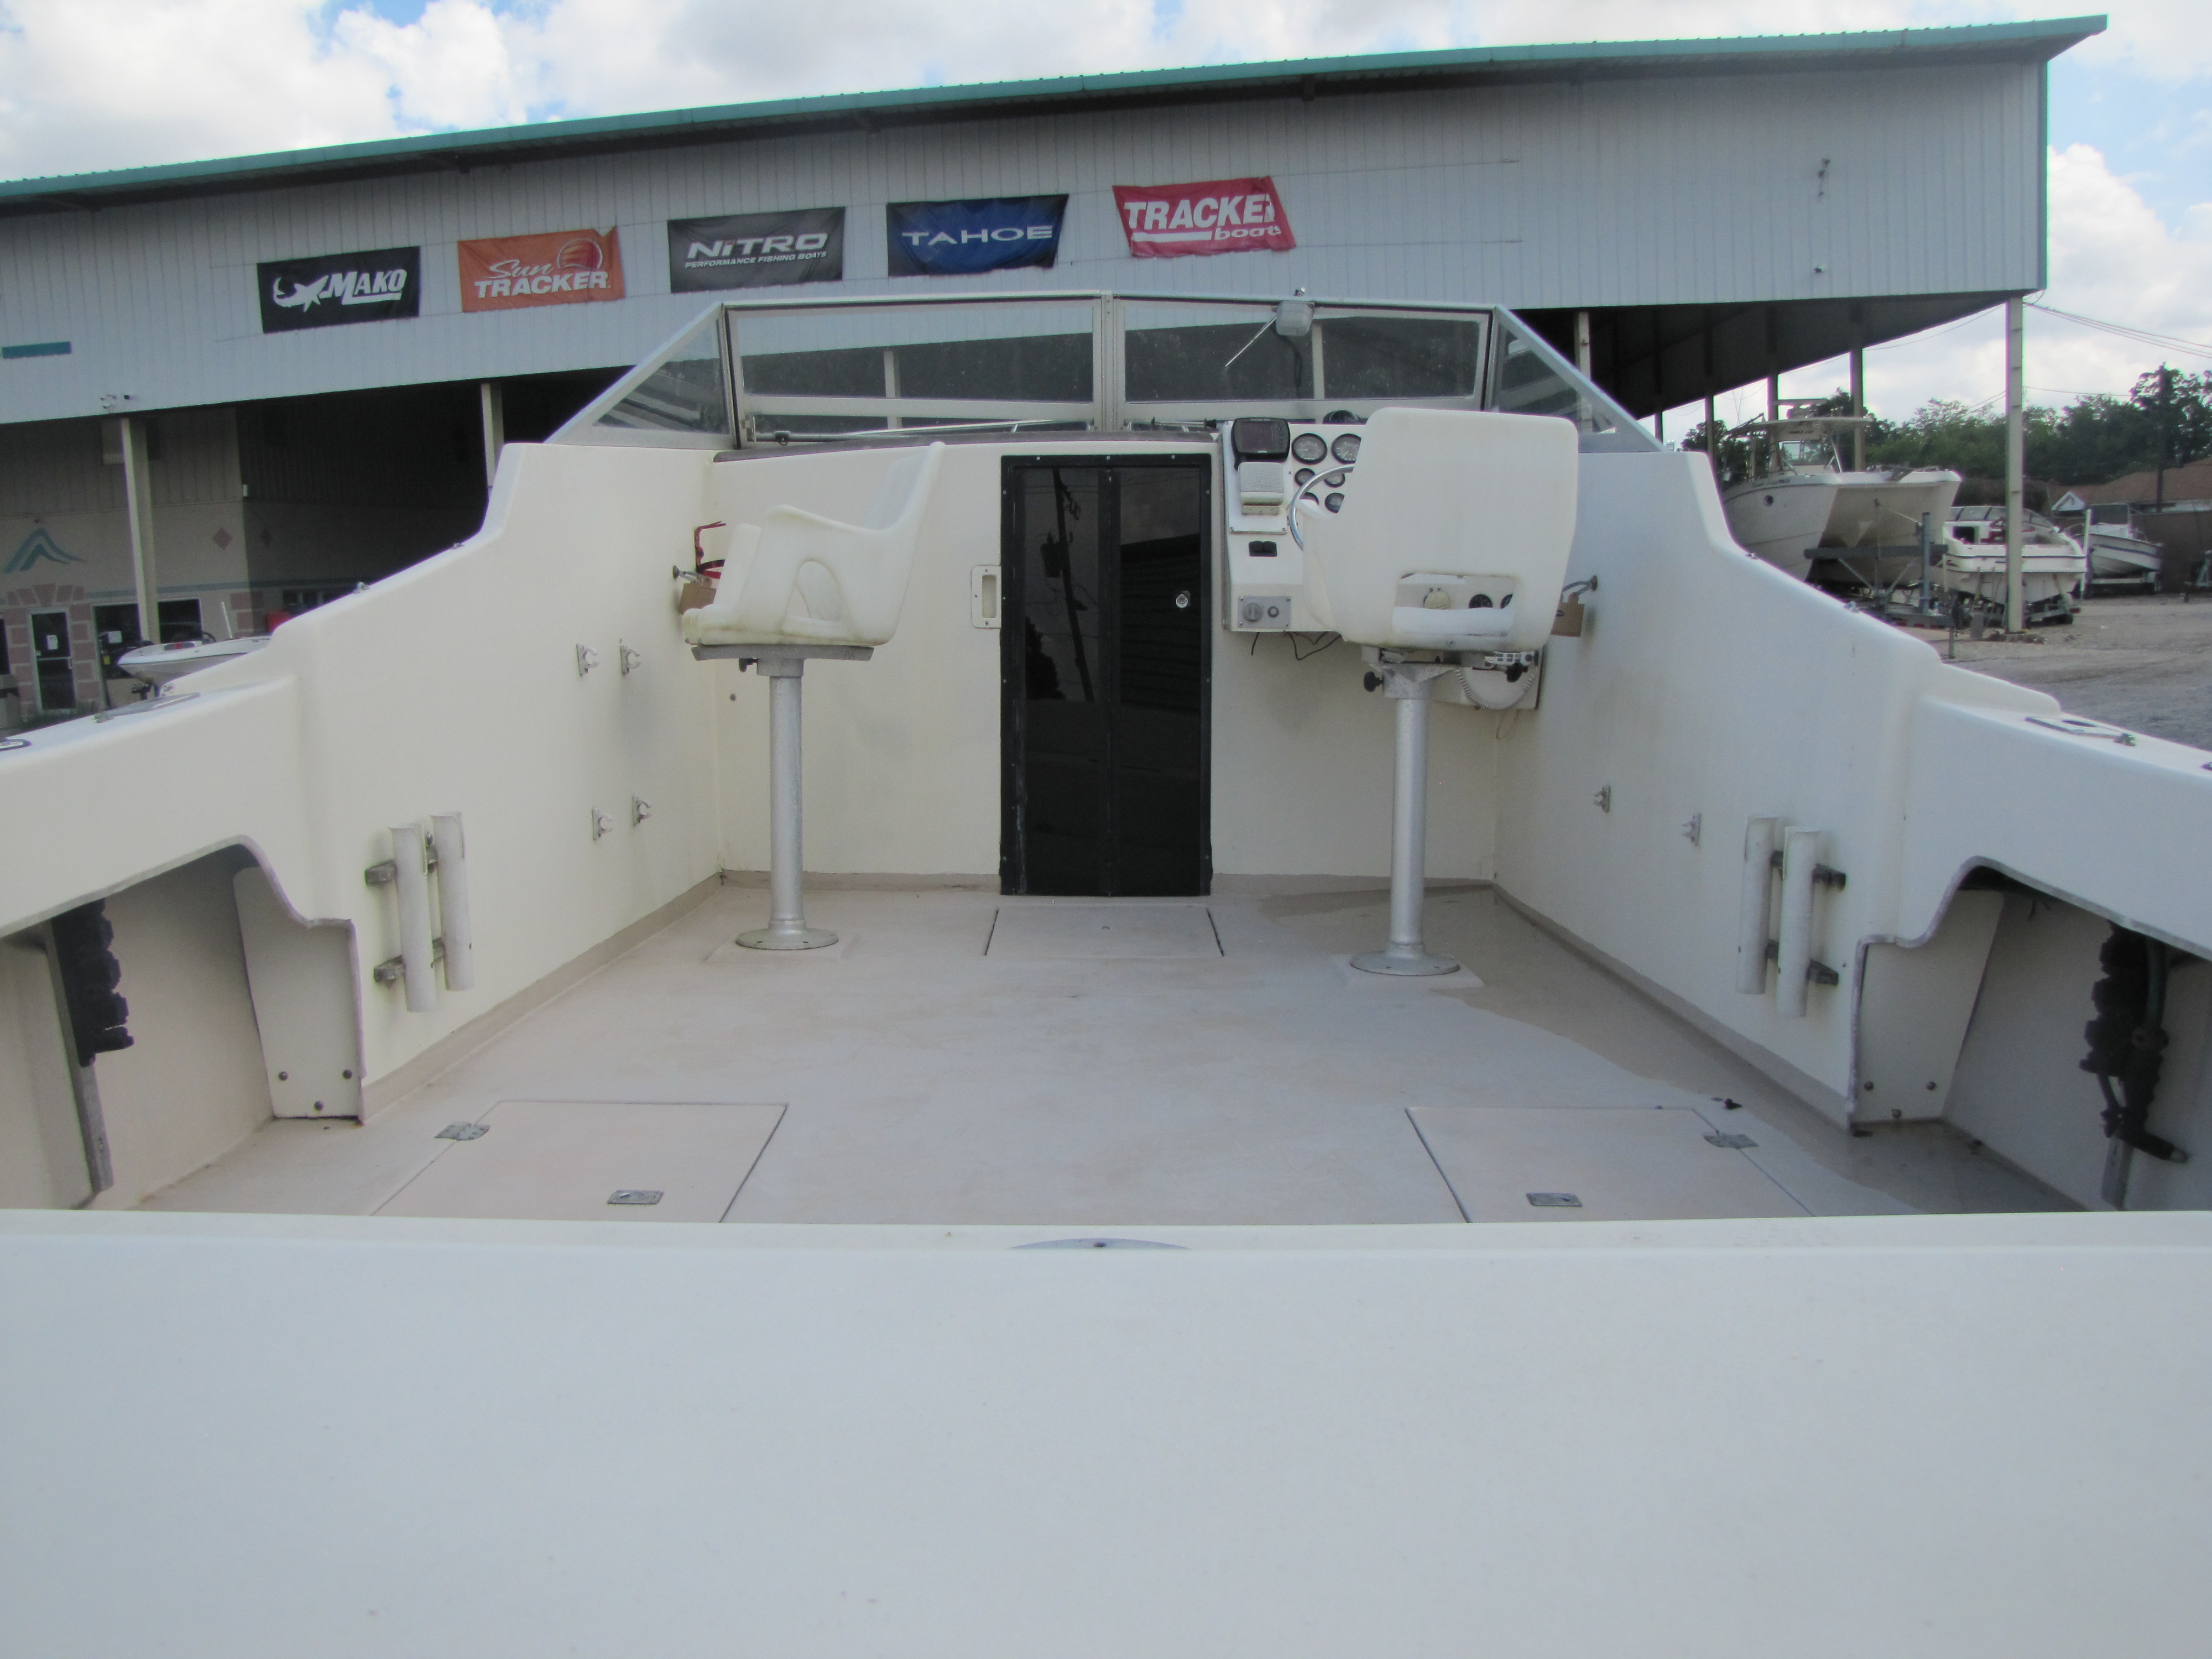 1993 Glen Young boat for sale, model of the boat is 270 & Image # 11 of 16